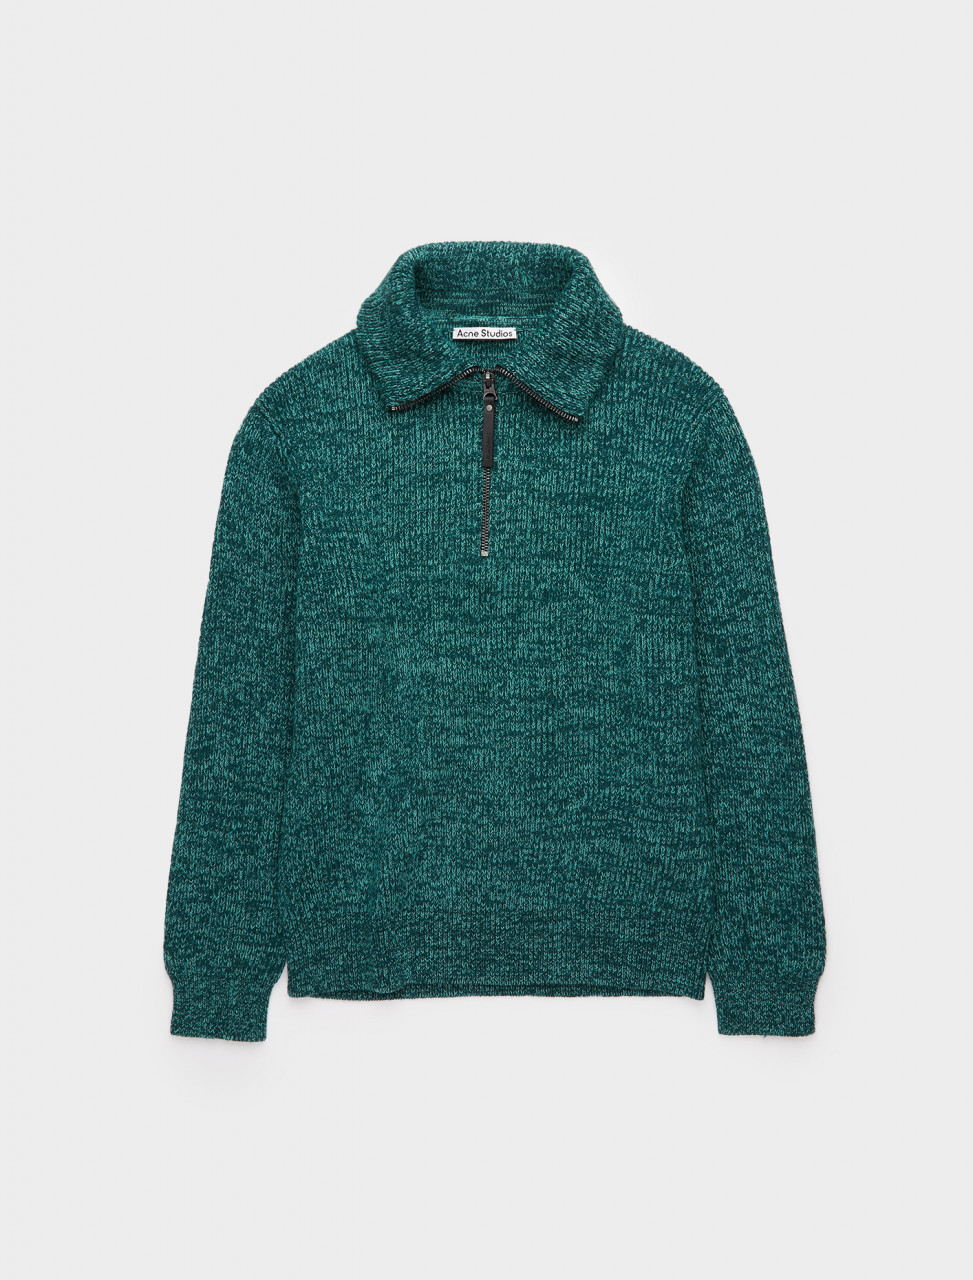 110-B60142-BLC ACNE STUDIOS HALF-ZIP RIBBED SWEATER IN FOREST GREEN